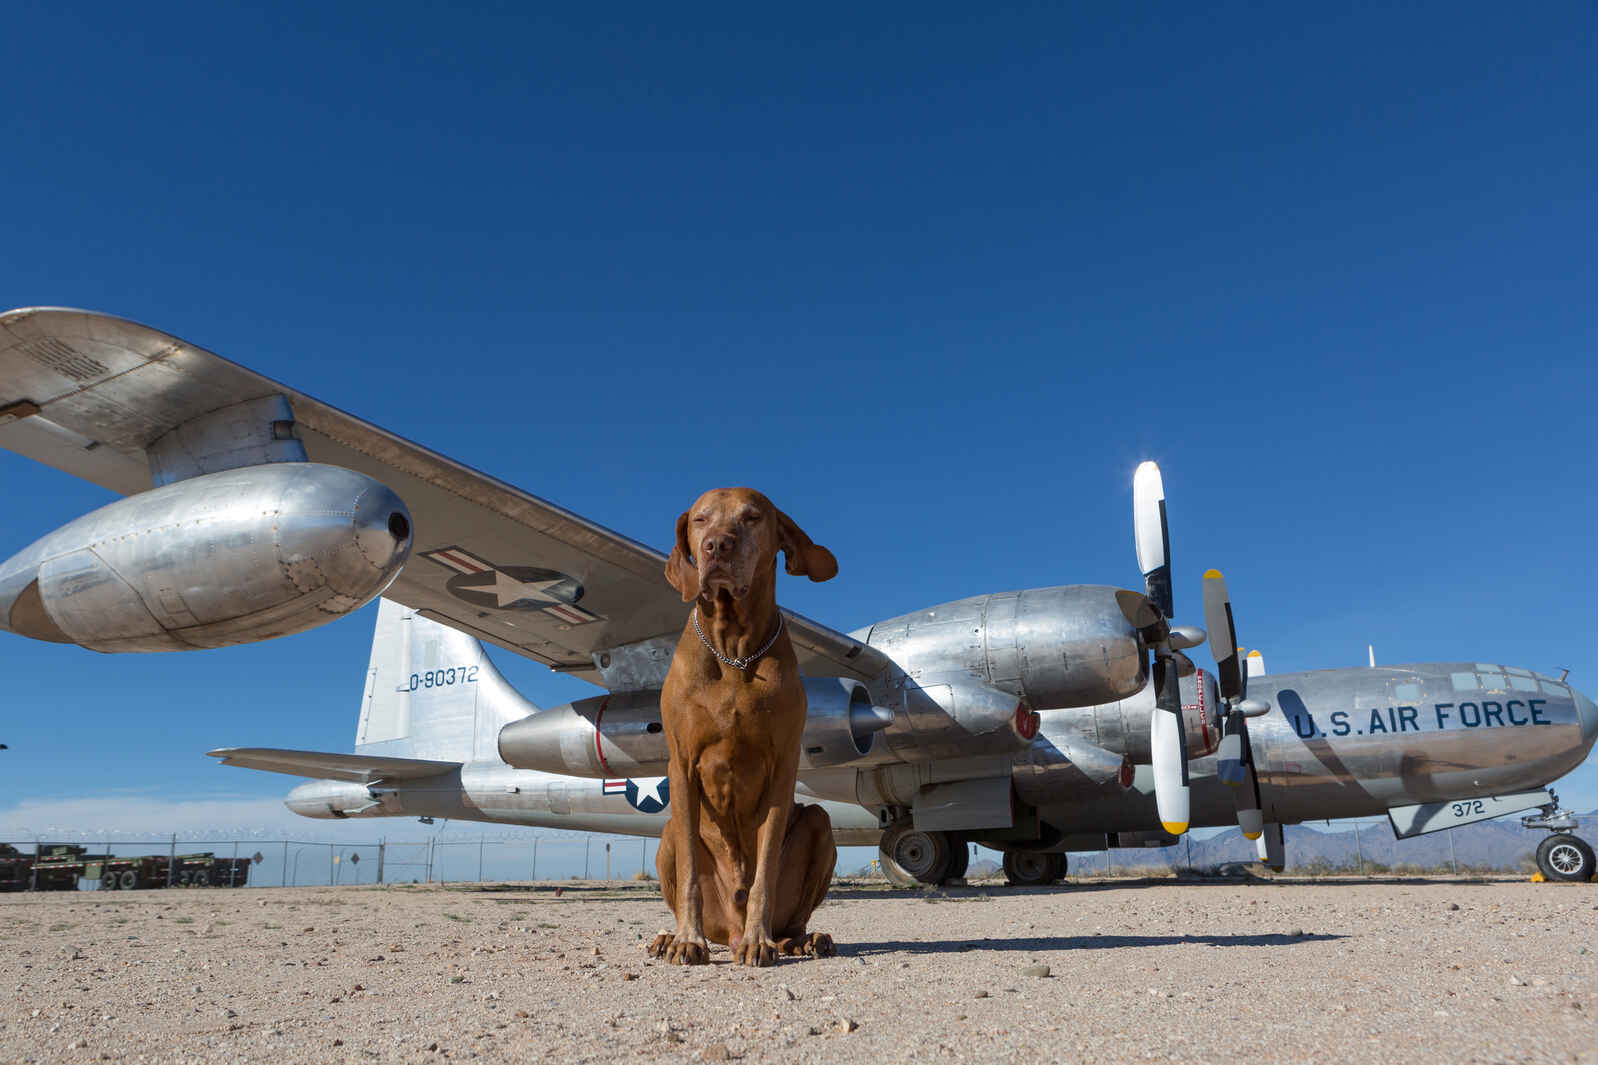 Dog-in-front-of-a-plane-1